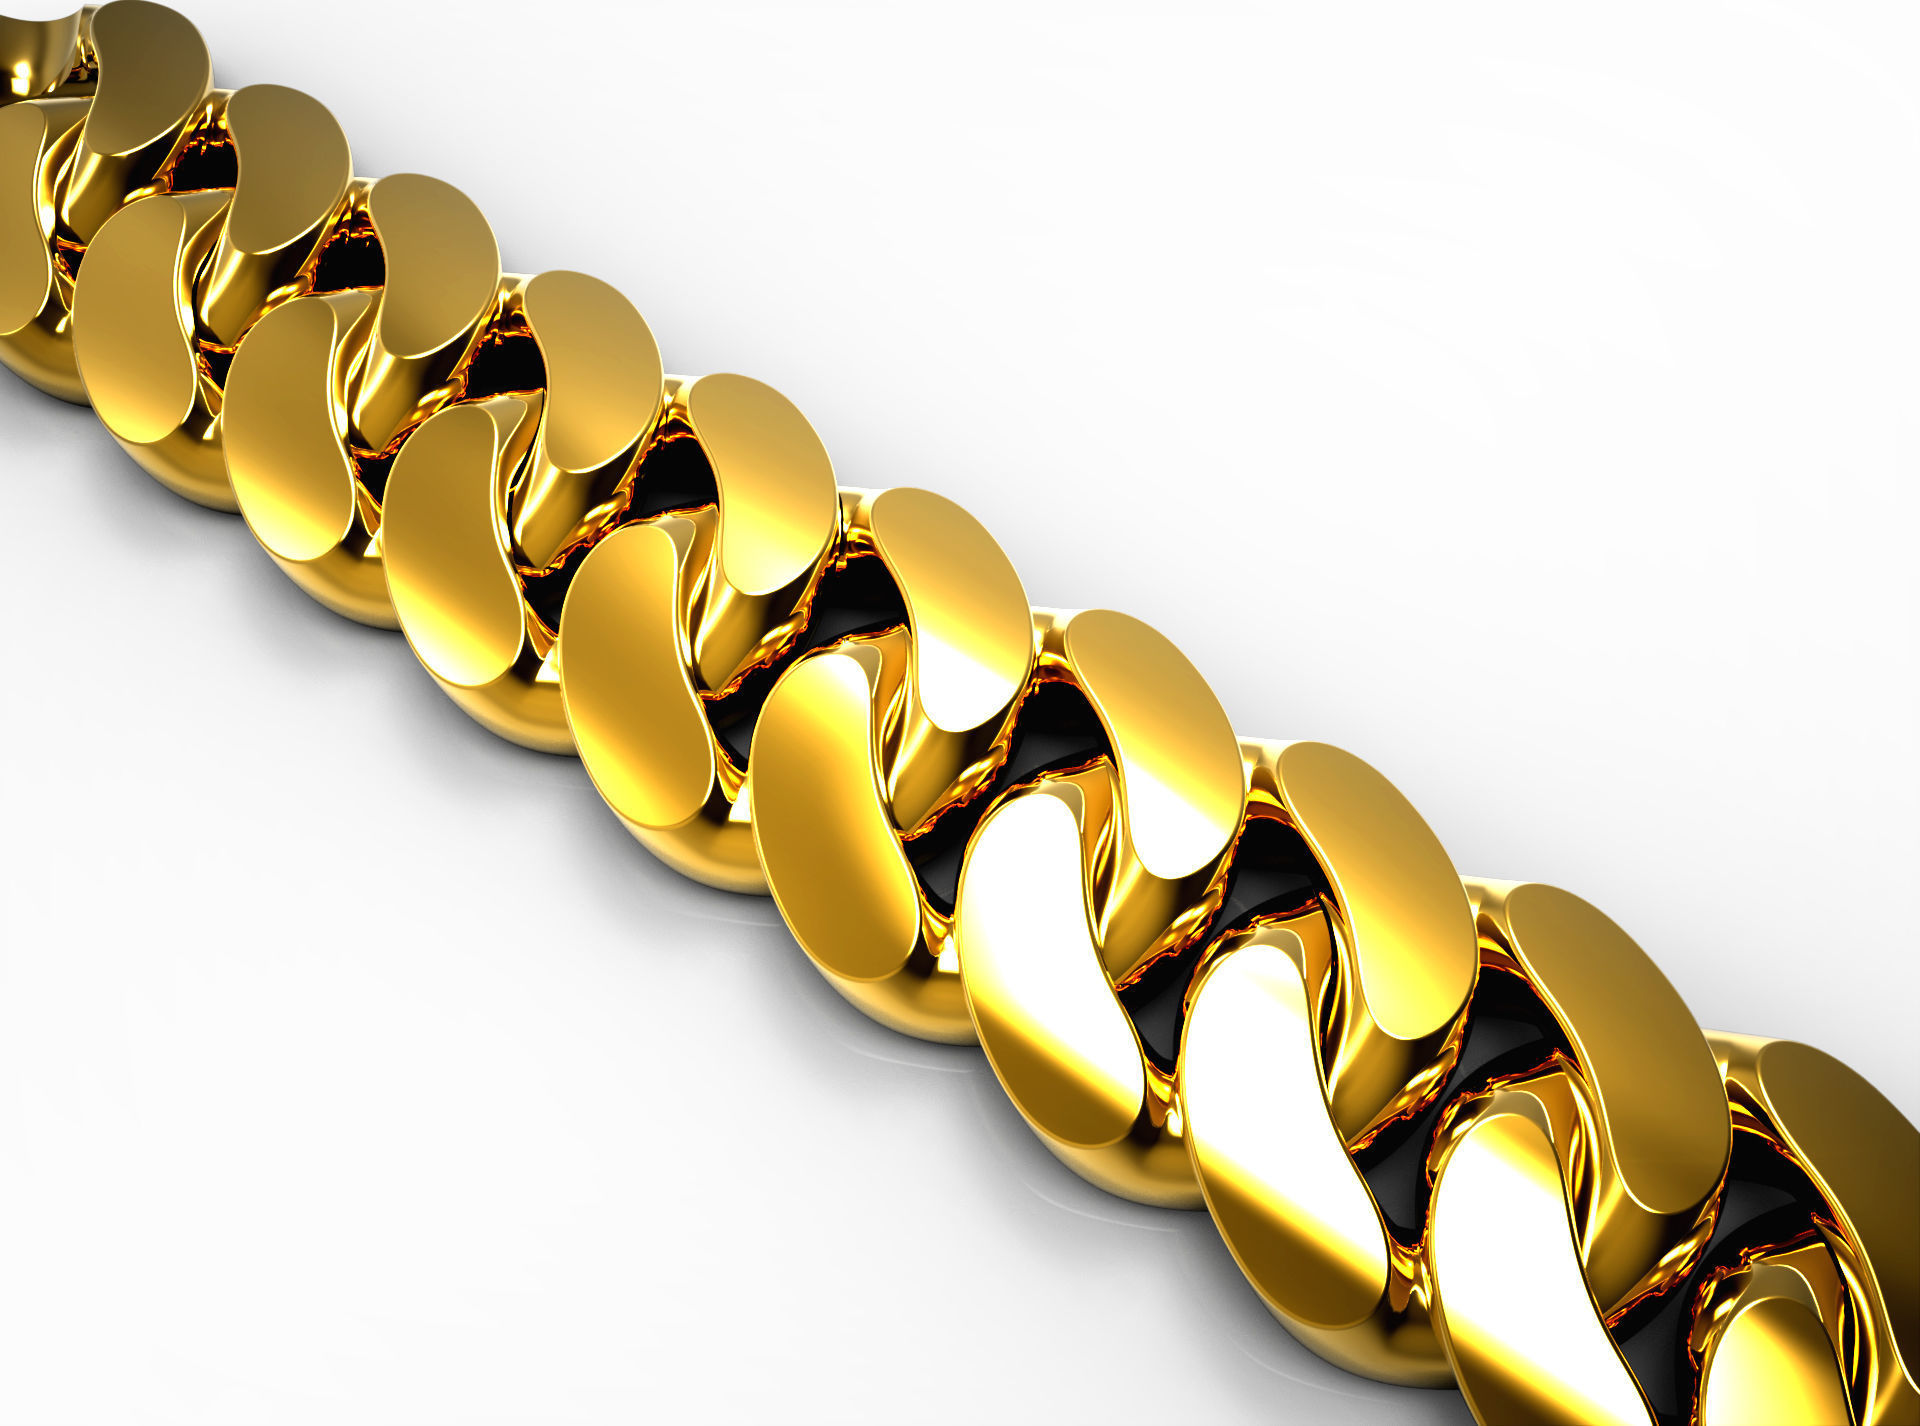 Almond style Cuban link for downloading